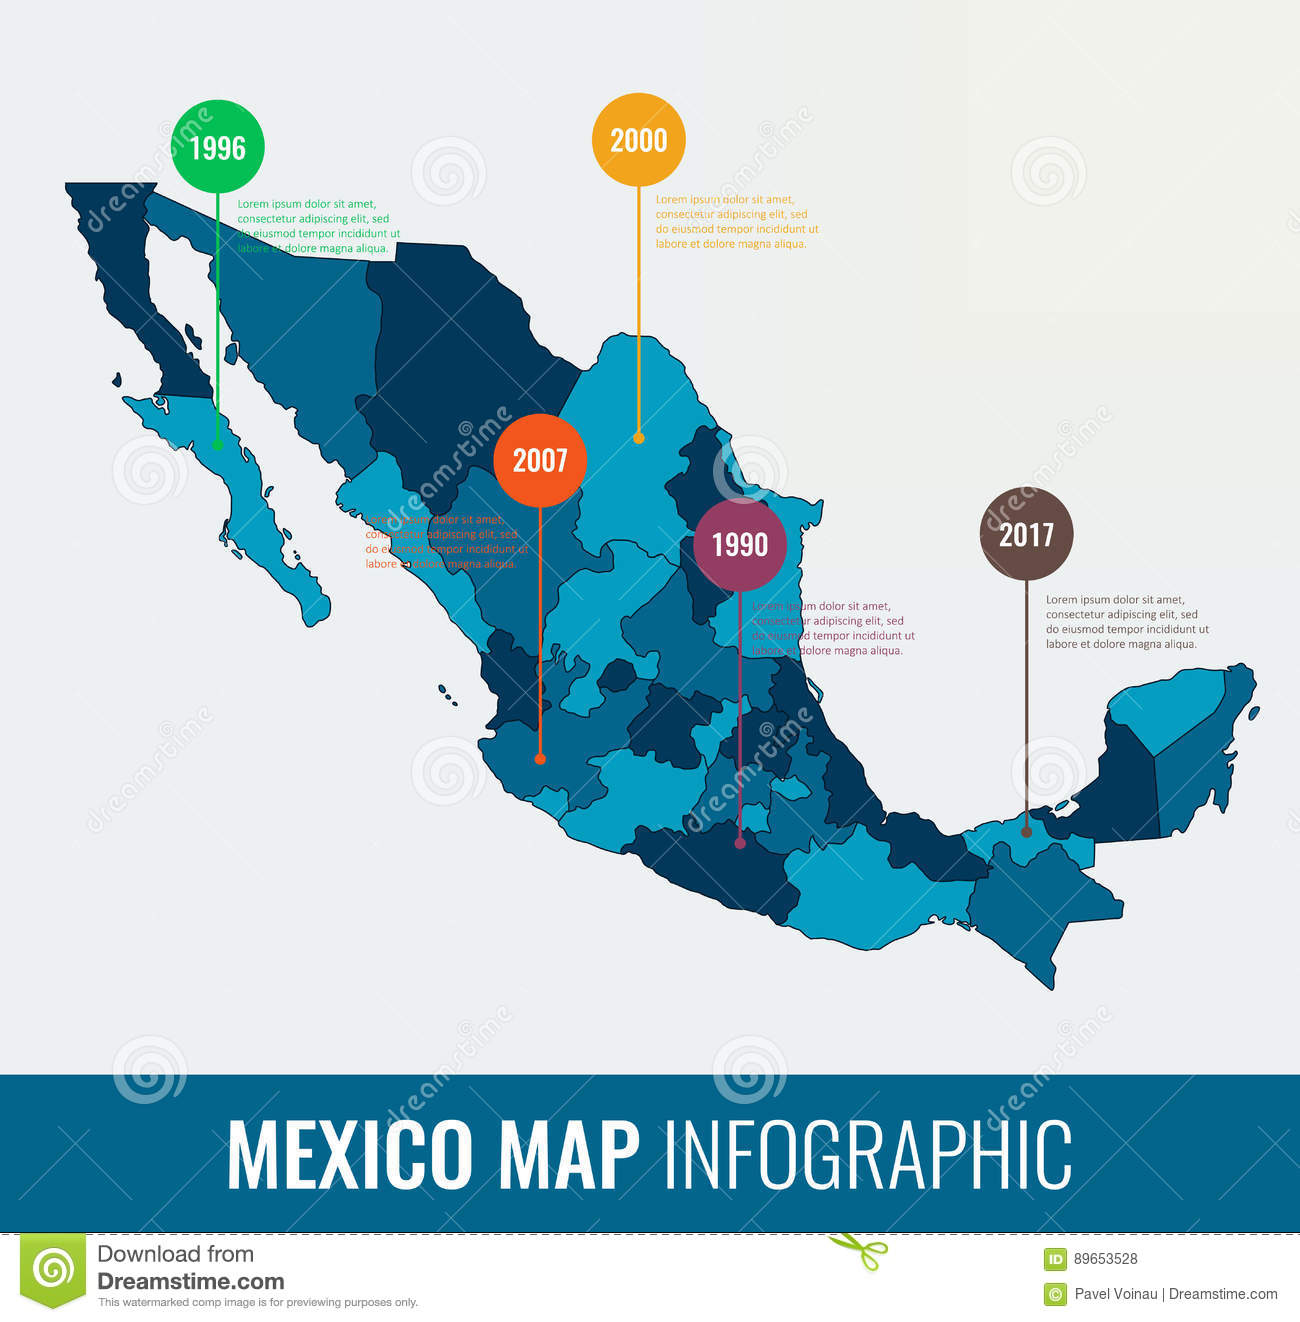 Mexico Map Infographic Template All Regions Are Selectable - Mexico regions map